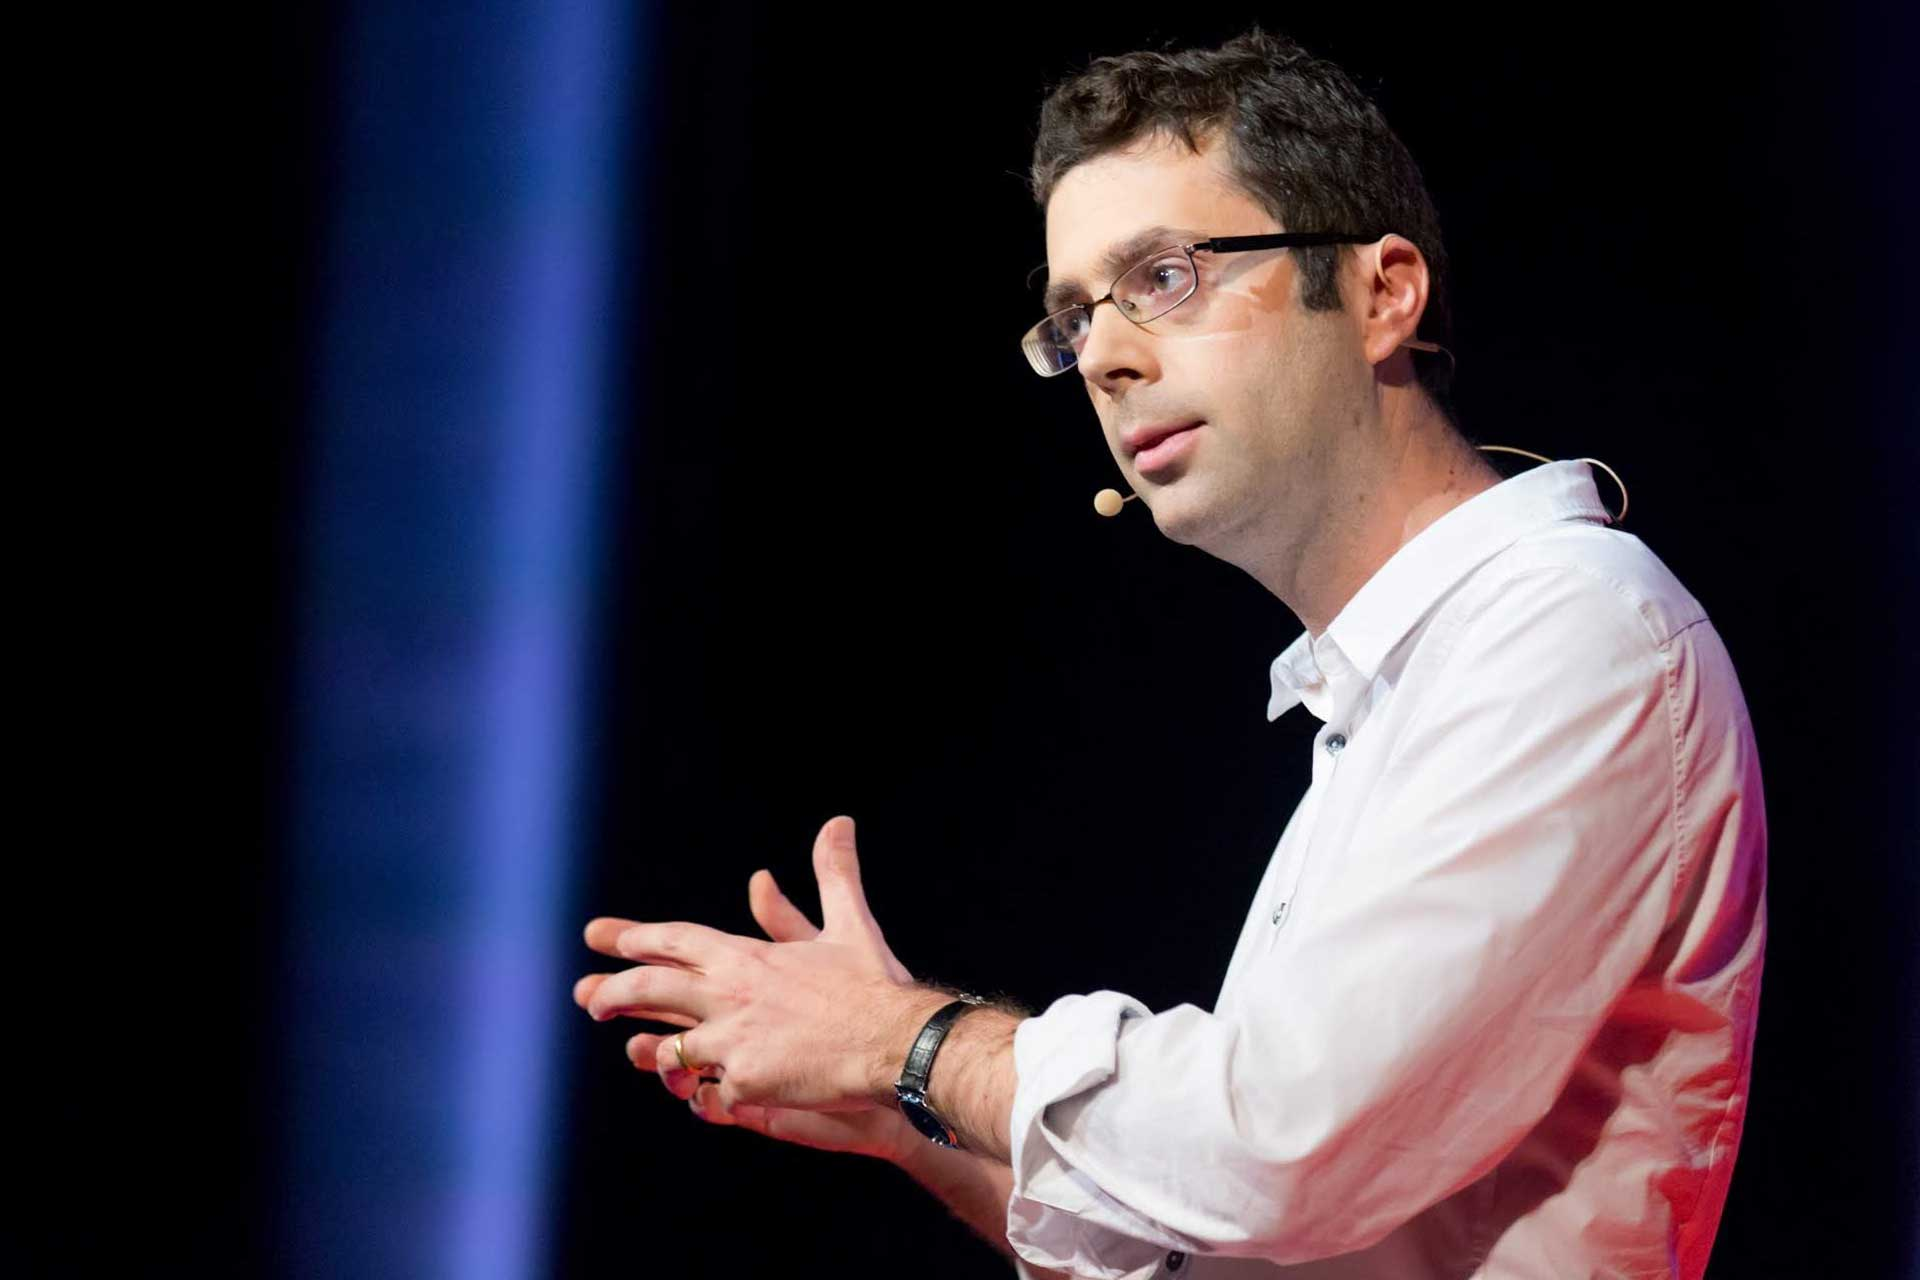 conference-TEDxParis-2015-6.jpg